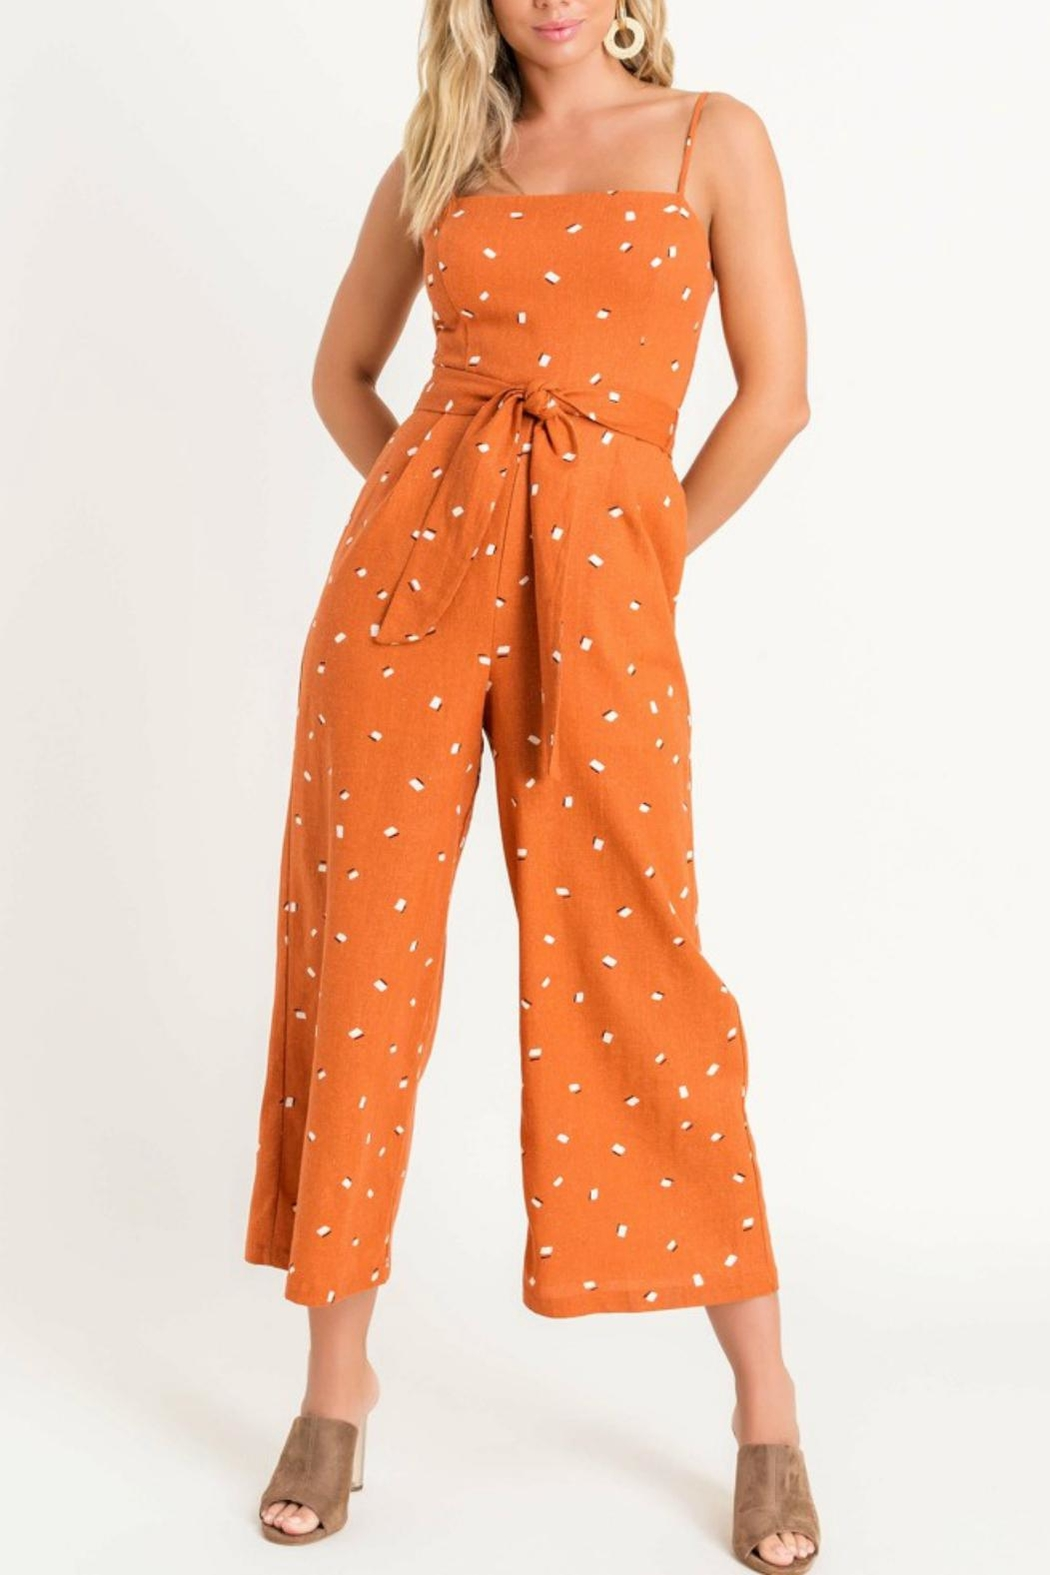 Pretty Little Things Printed Tie Jumpsuit - Front Cropped Image